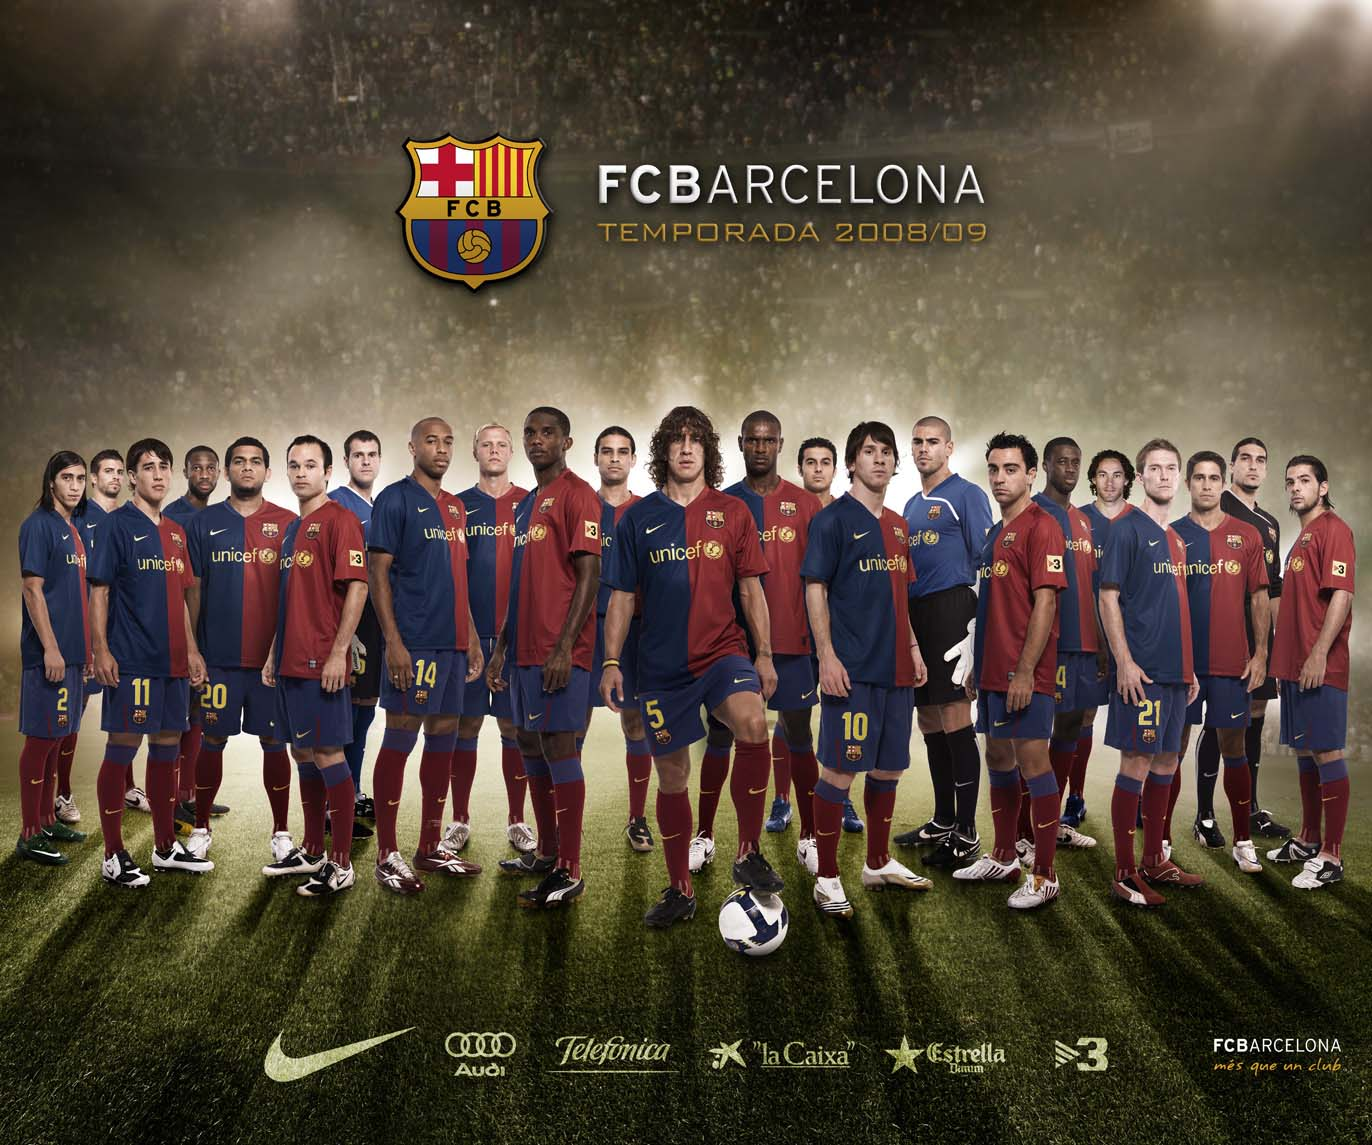 FC Barcelona is the first football club in the world has ever done this  achievement. Barca fans are also often called Cules. e9ff8ad1f41